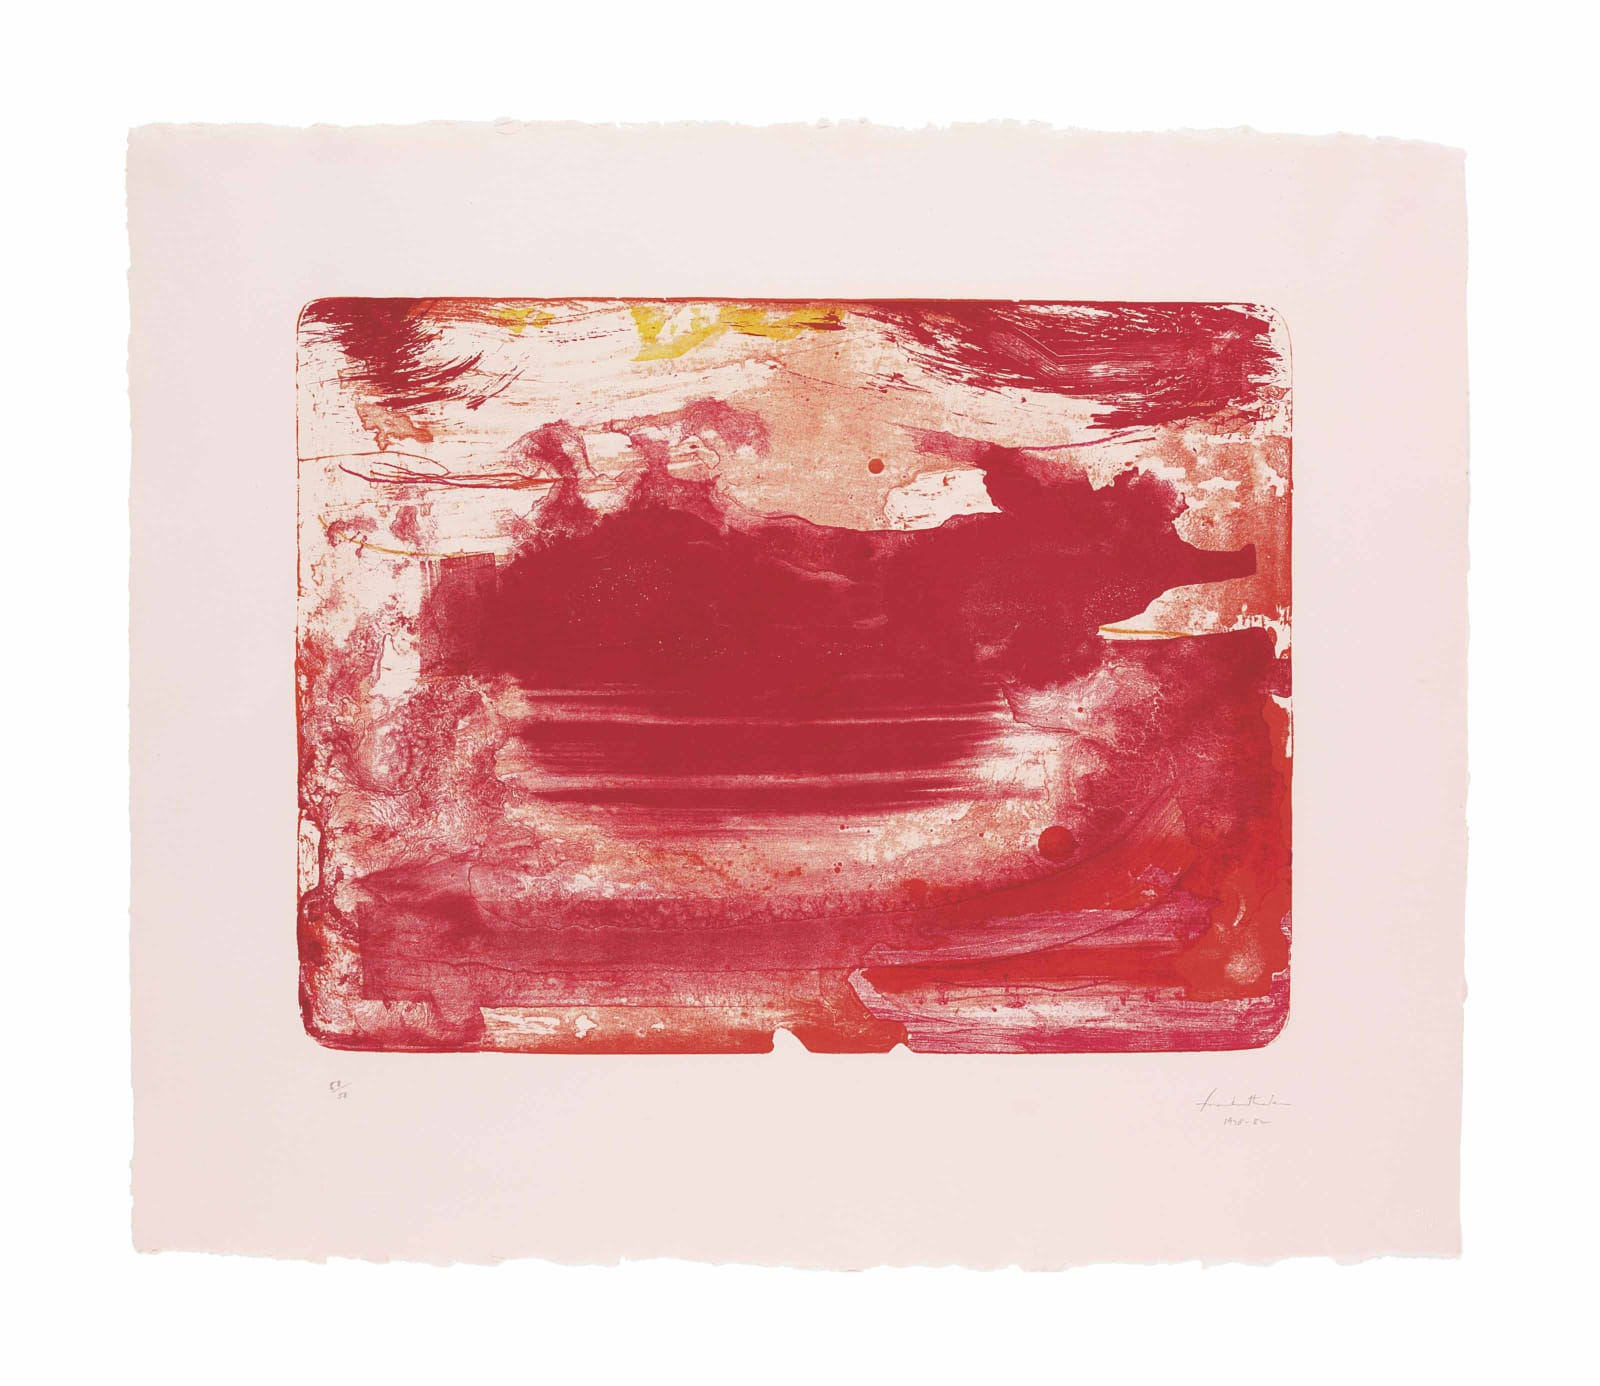 Helen Frankenthaler, The Red Sea, 1978